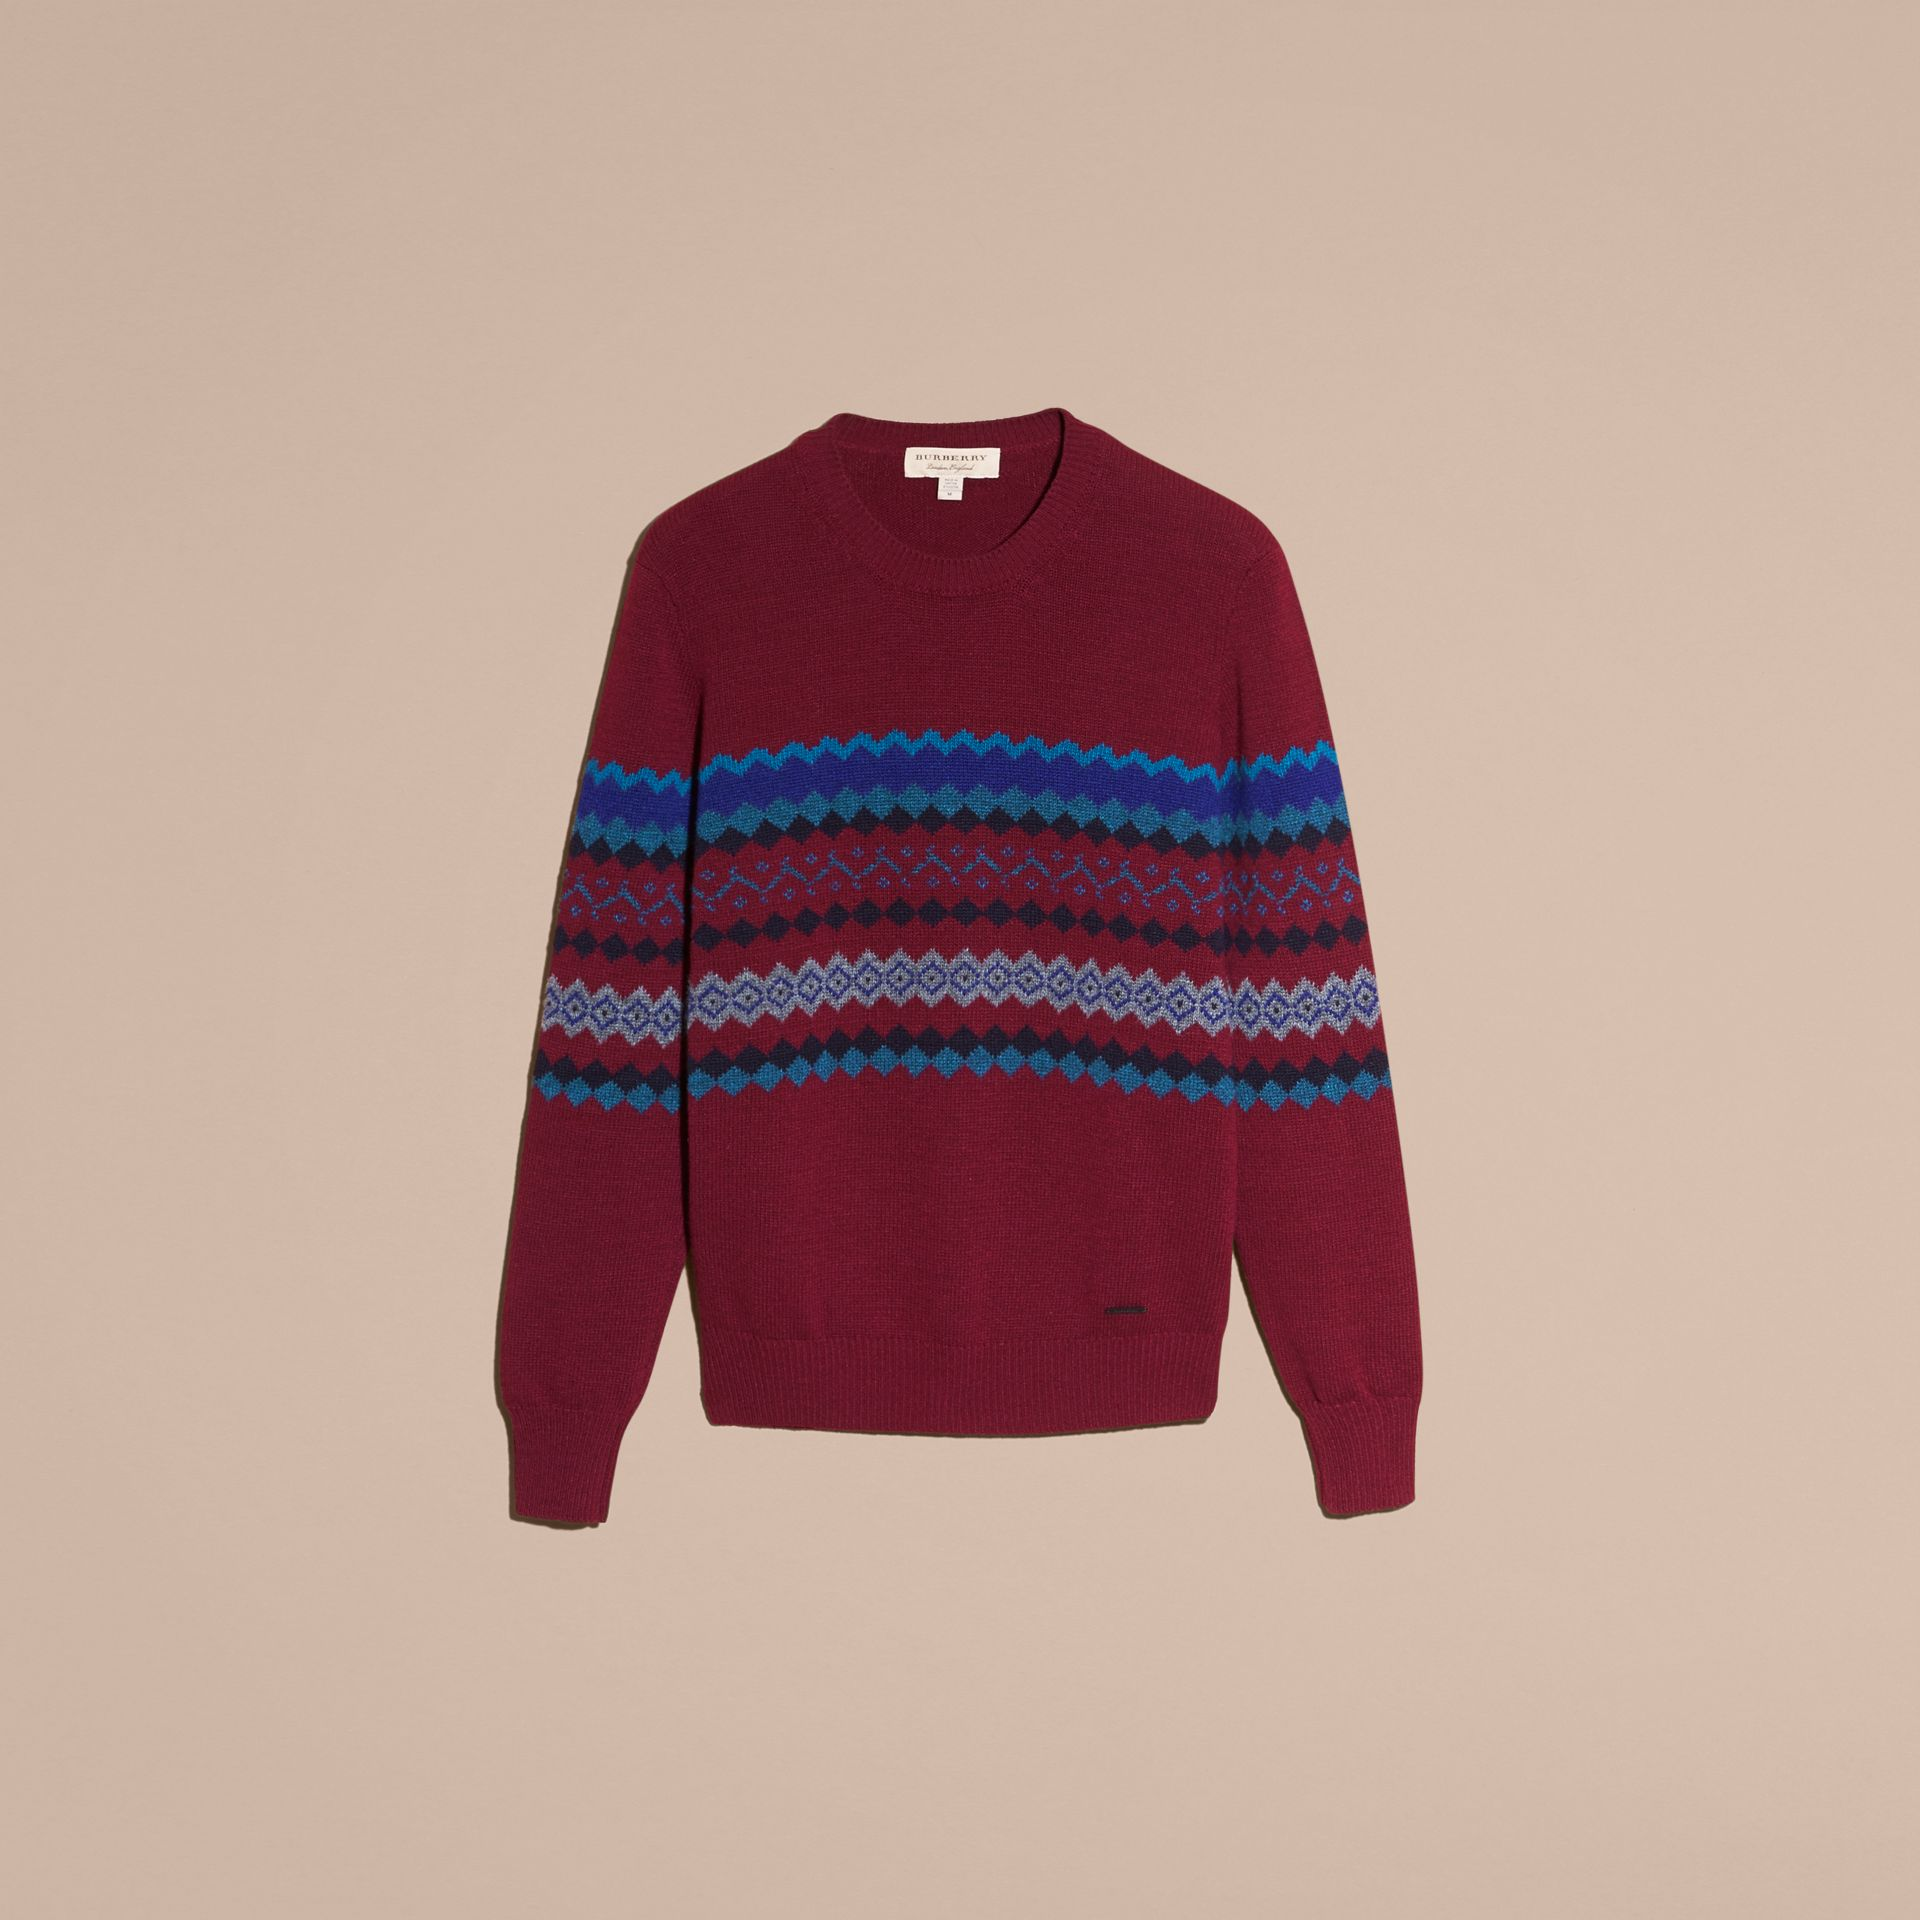 Burgundy Fair Isle Intarsia Cashmere Wool Sweater - gallery image 4